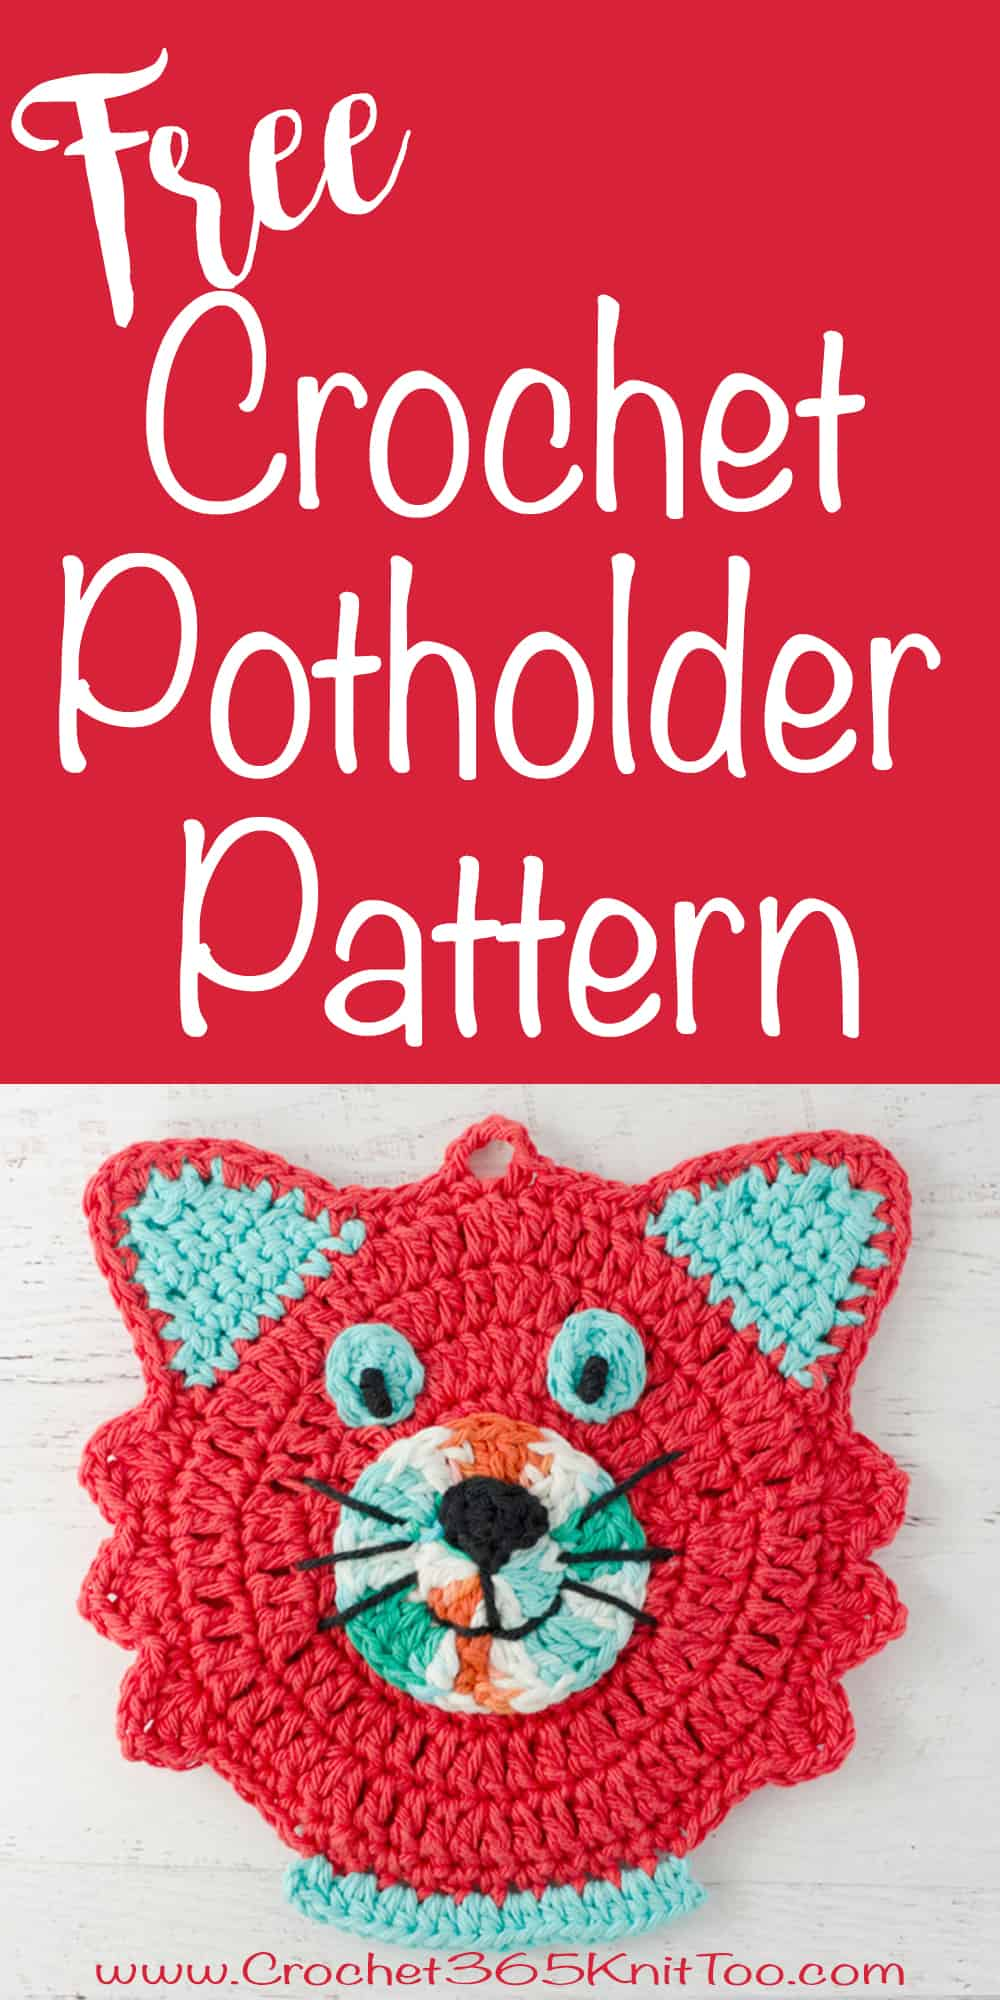 love this crochet cat potholder pattern |crochet365knittoo #crochetpatholder #crochetpattern